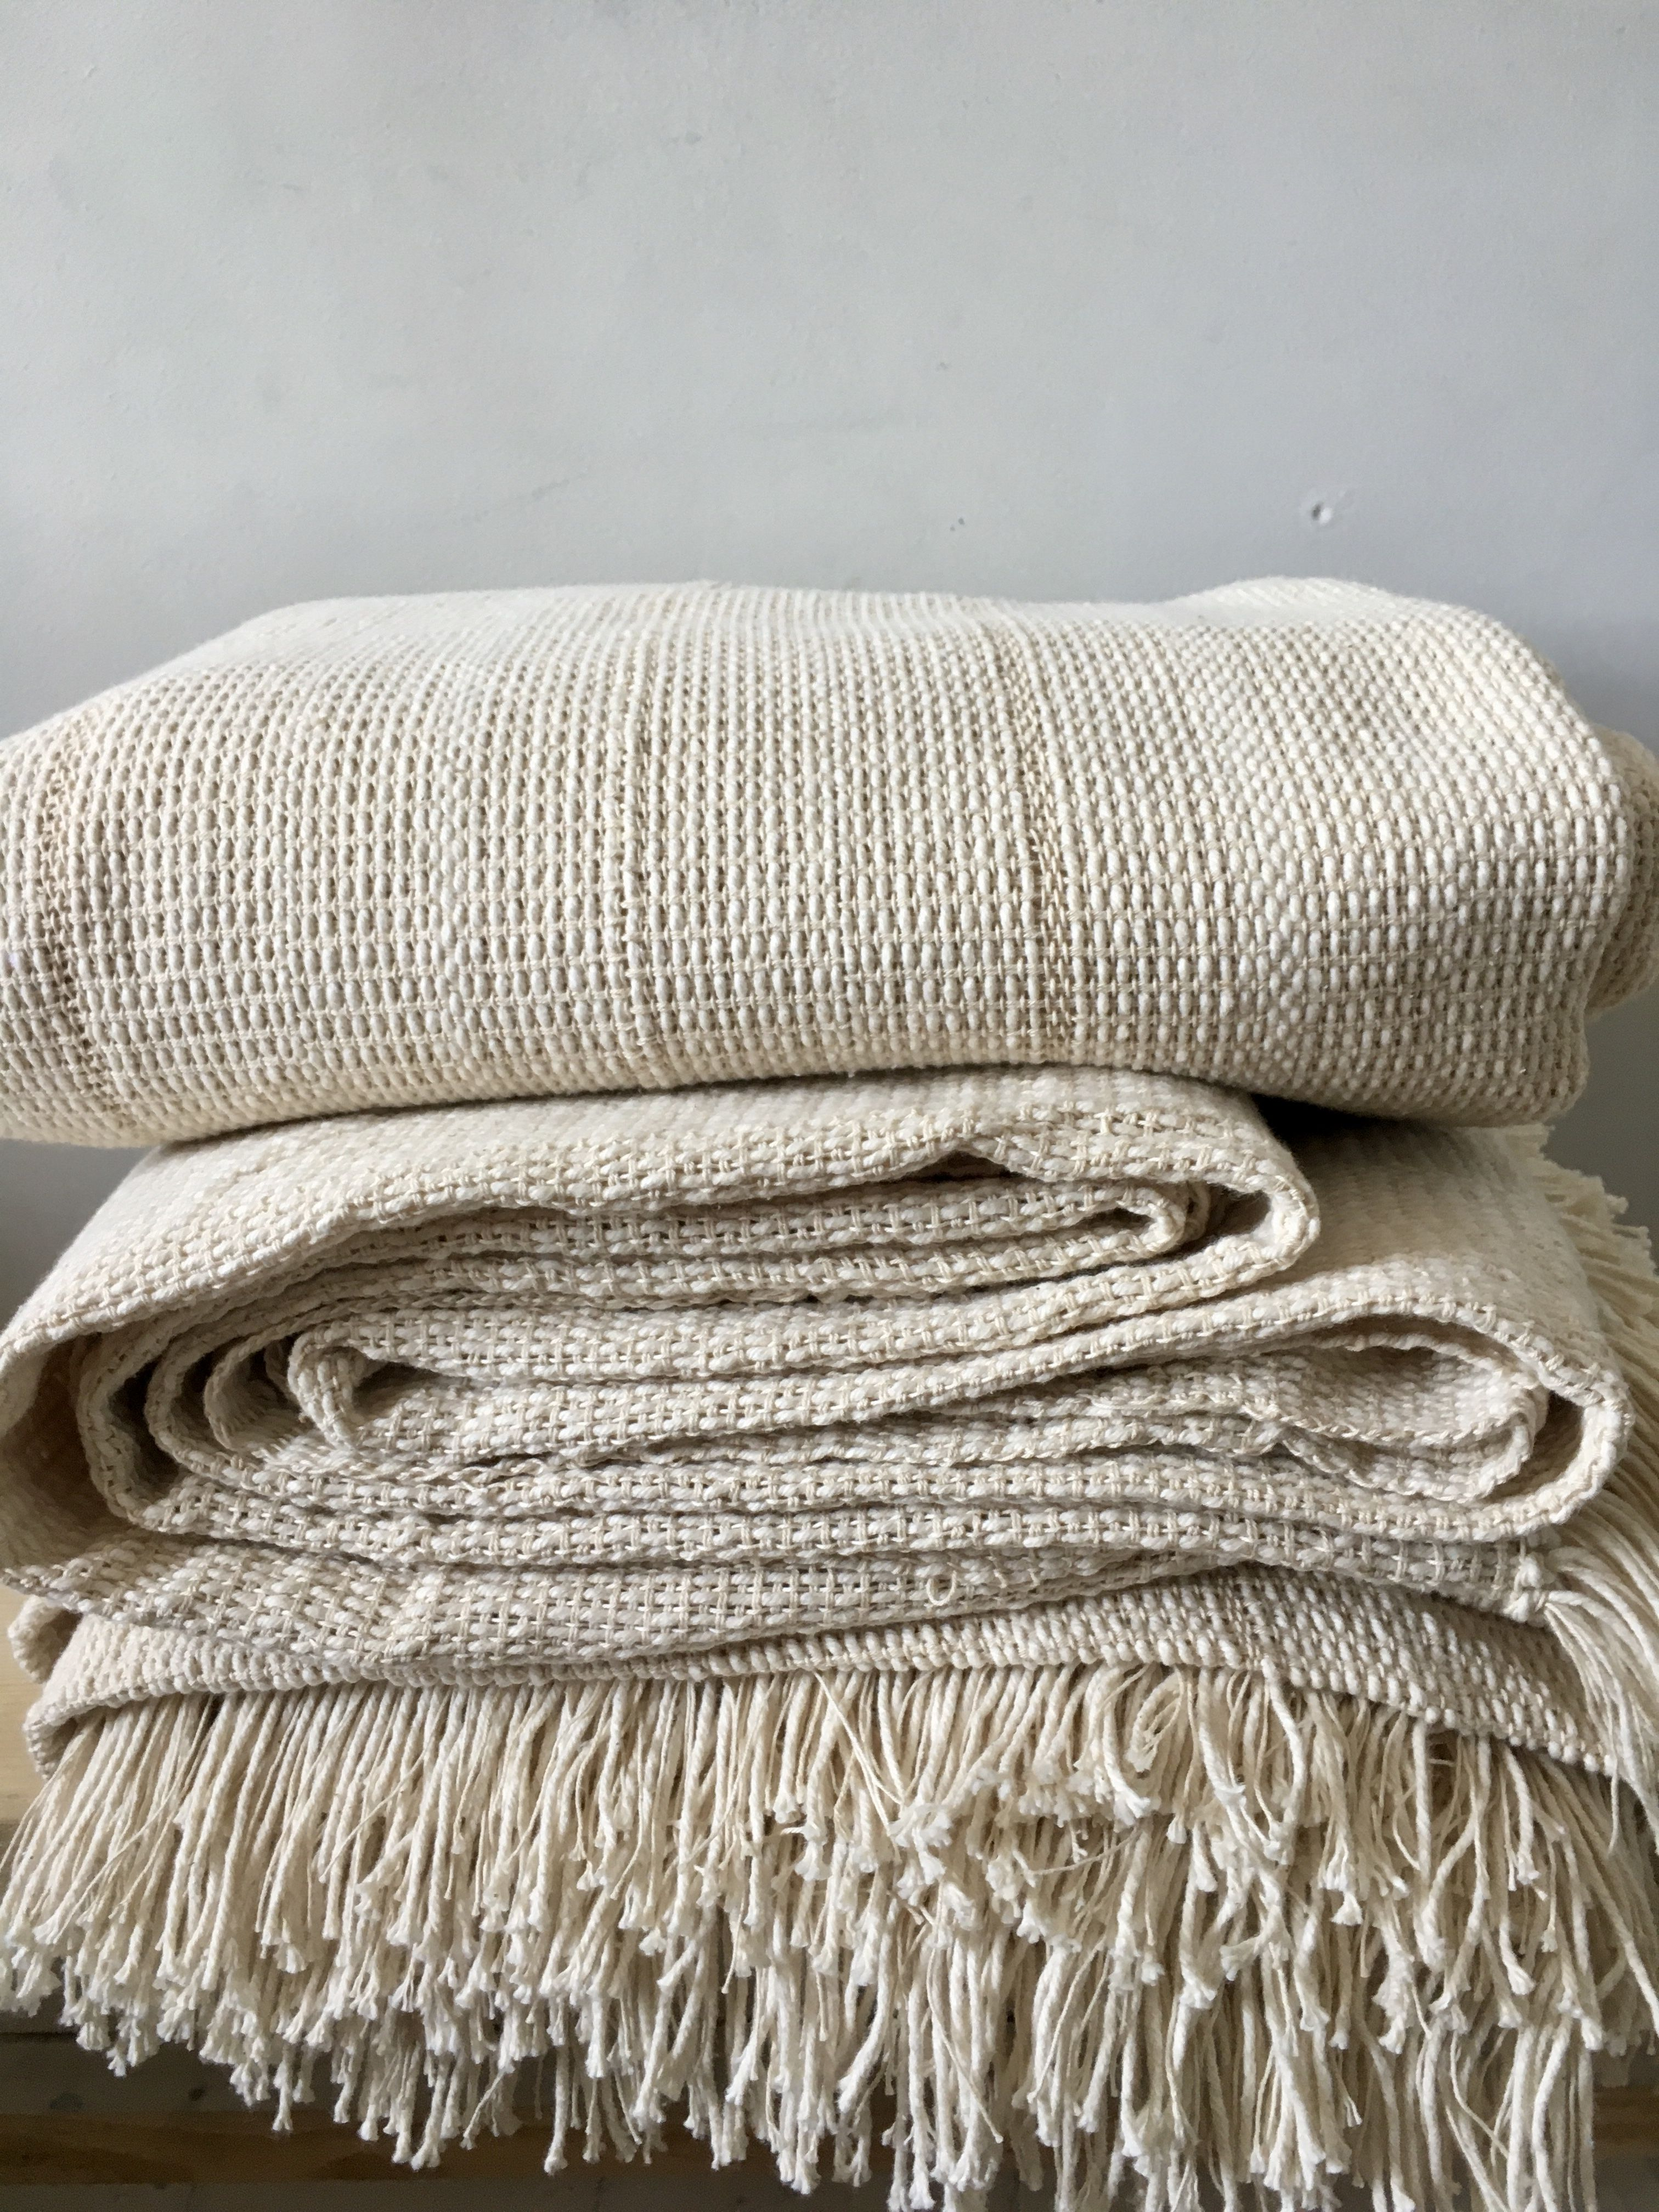 Pin On Placemats Woven Baskets Natural Throws